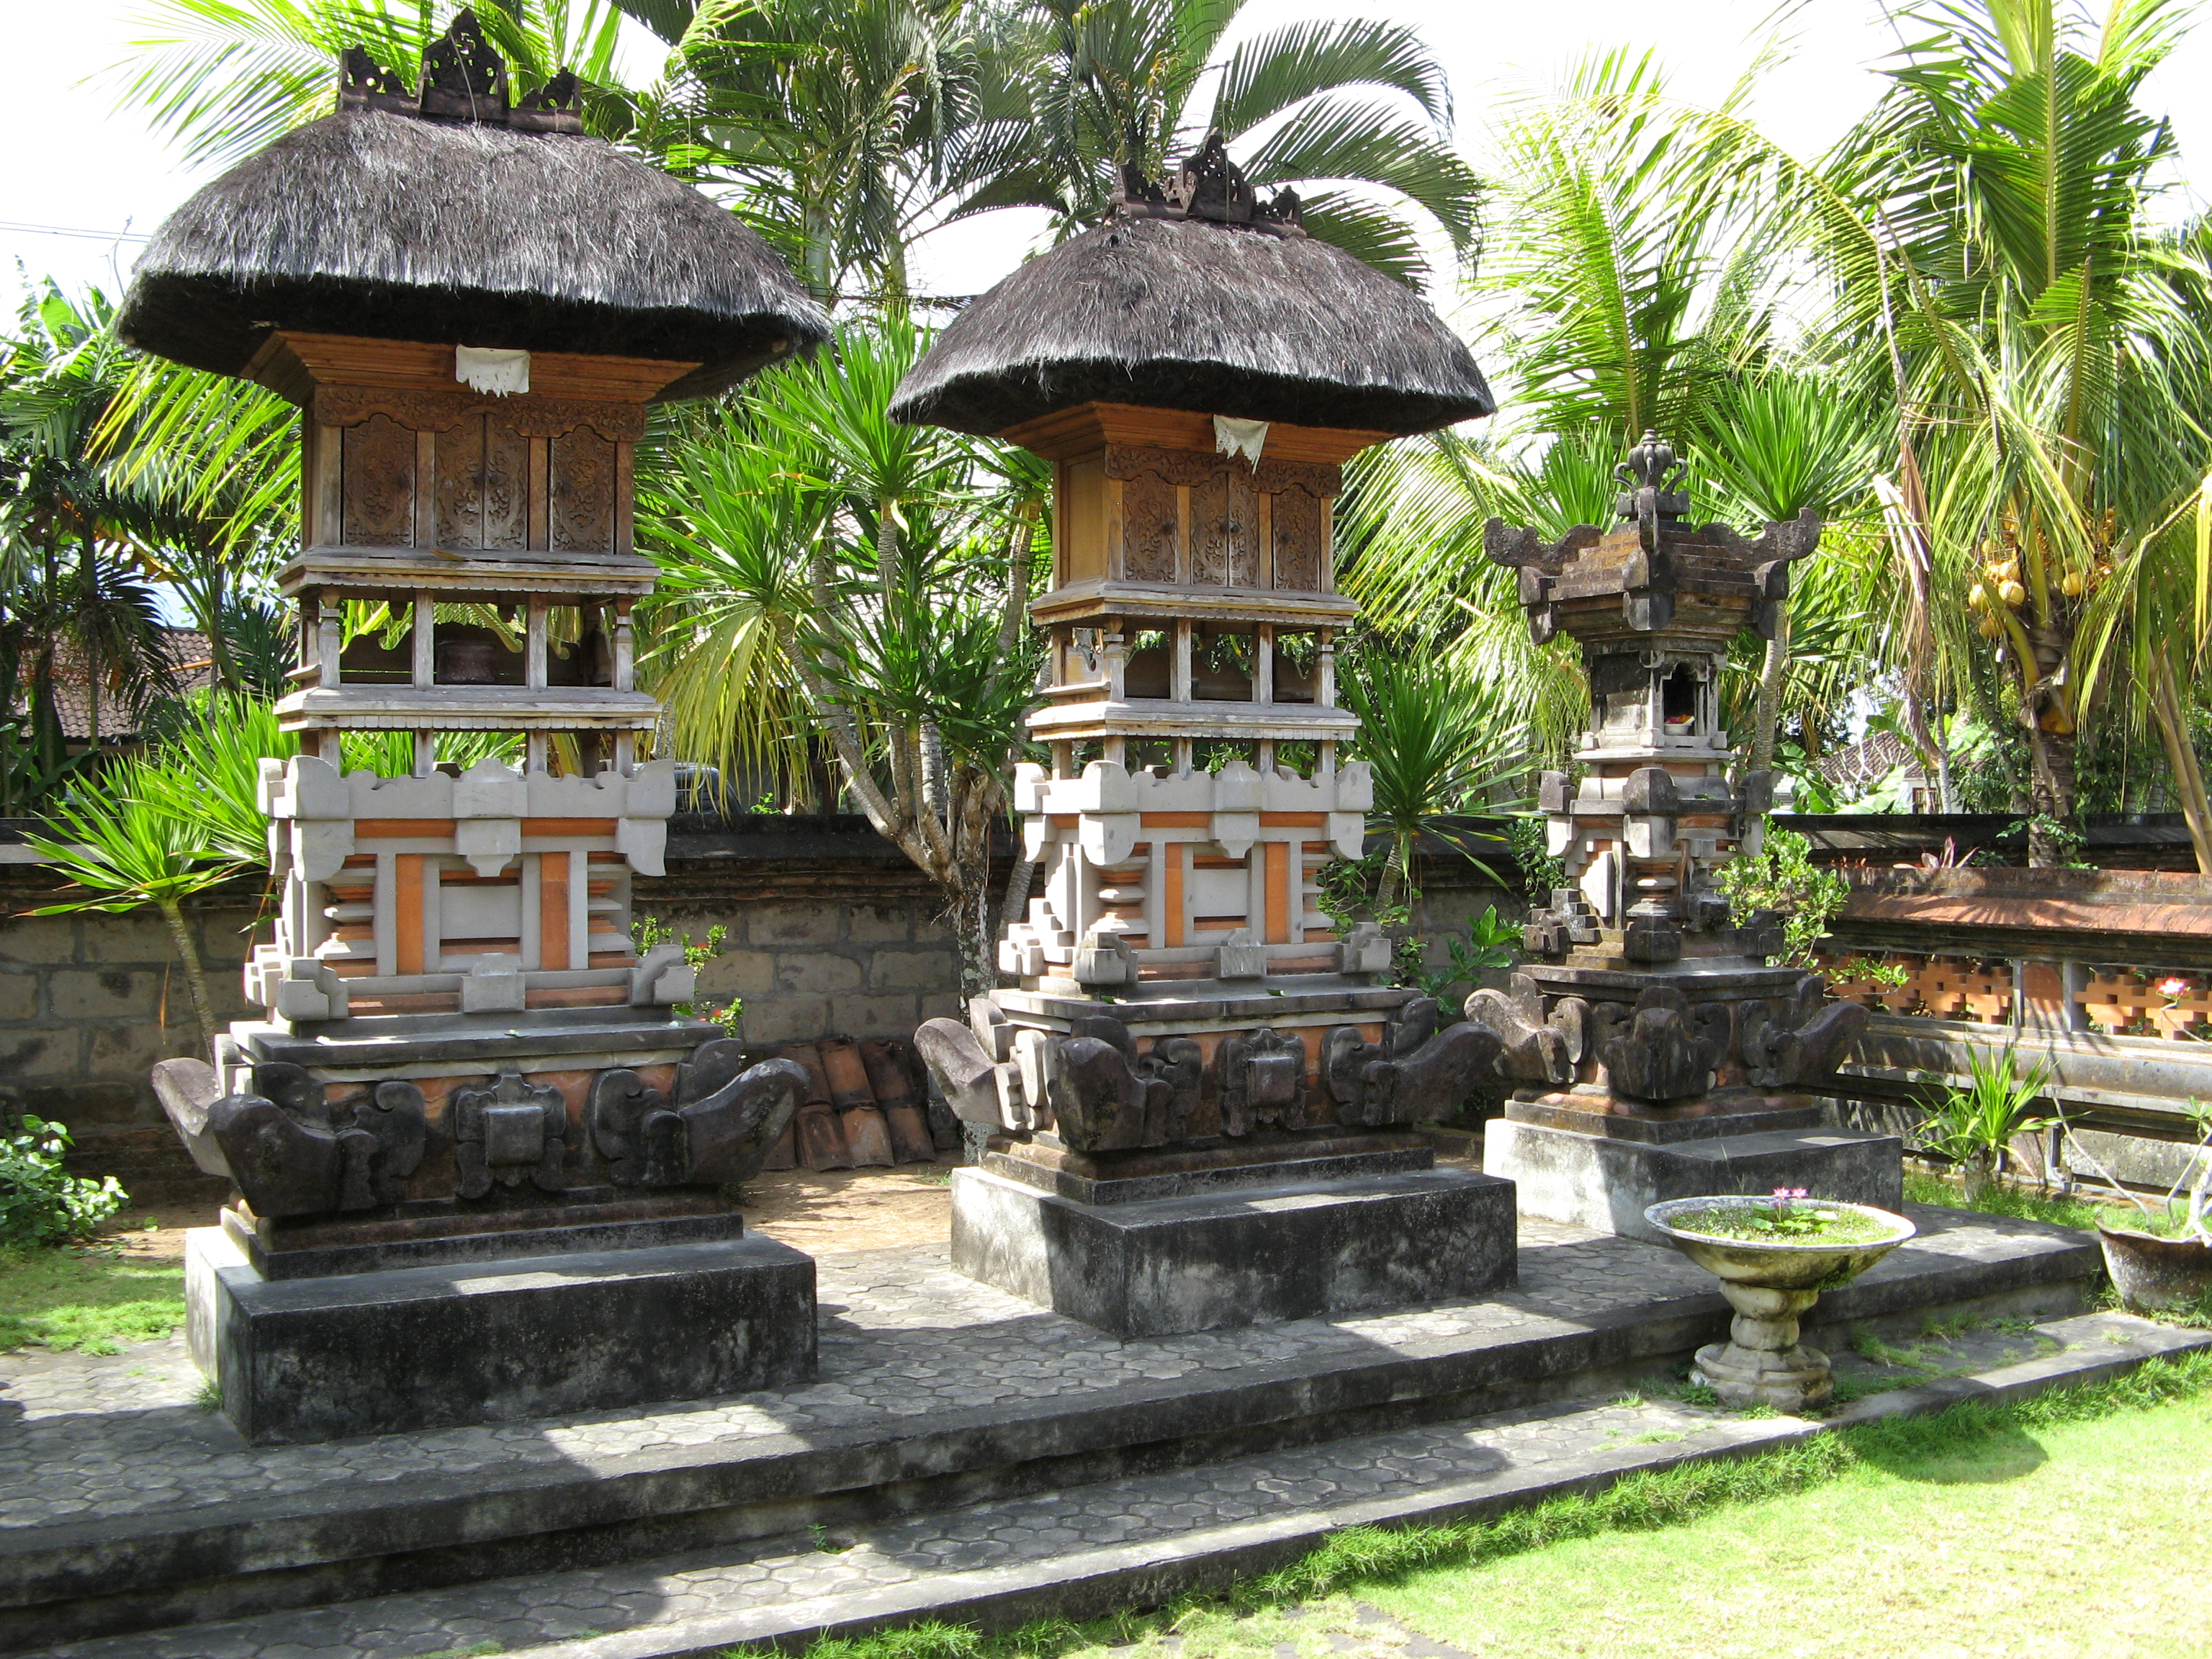 File:Balinese Traditional House Shrines 1452.jpg - Wikimedia Commons